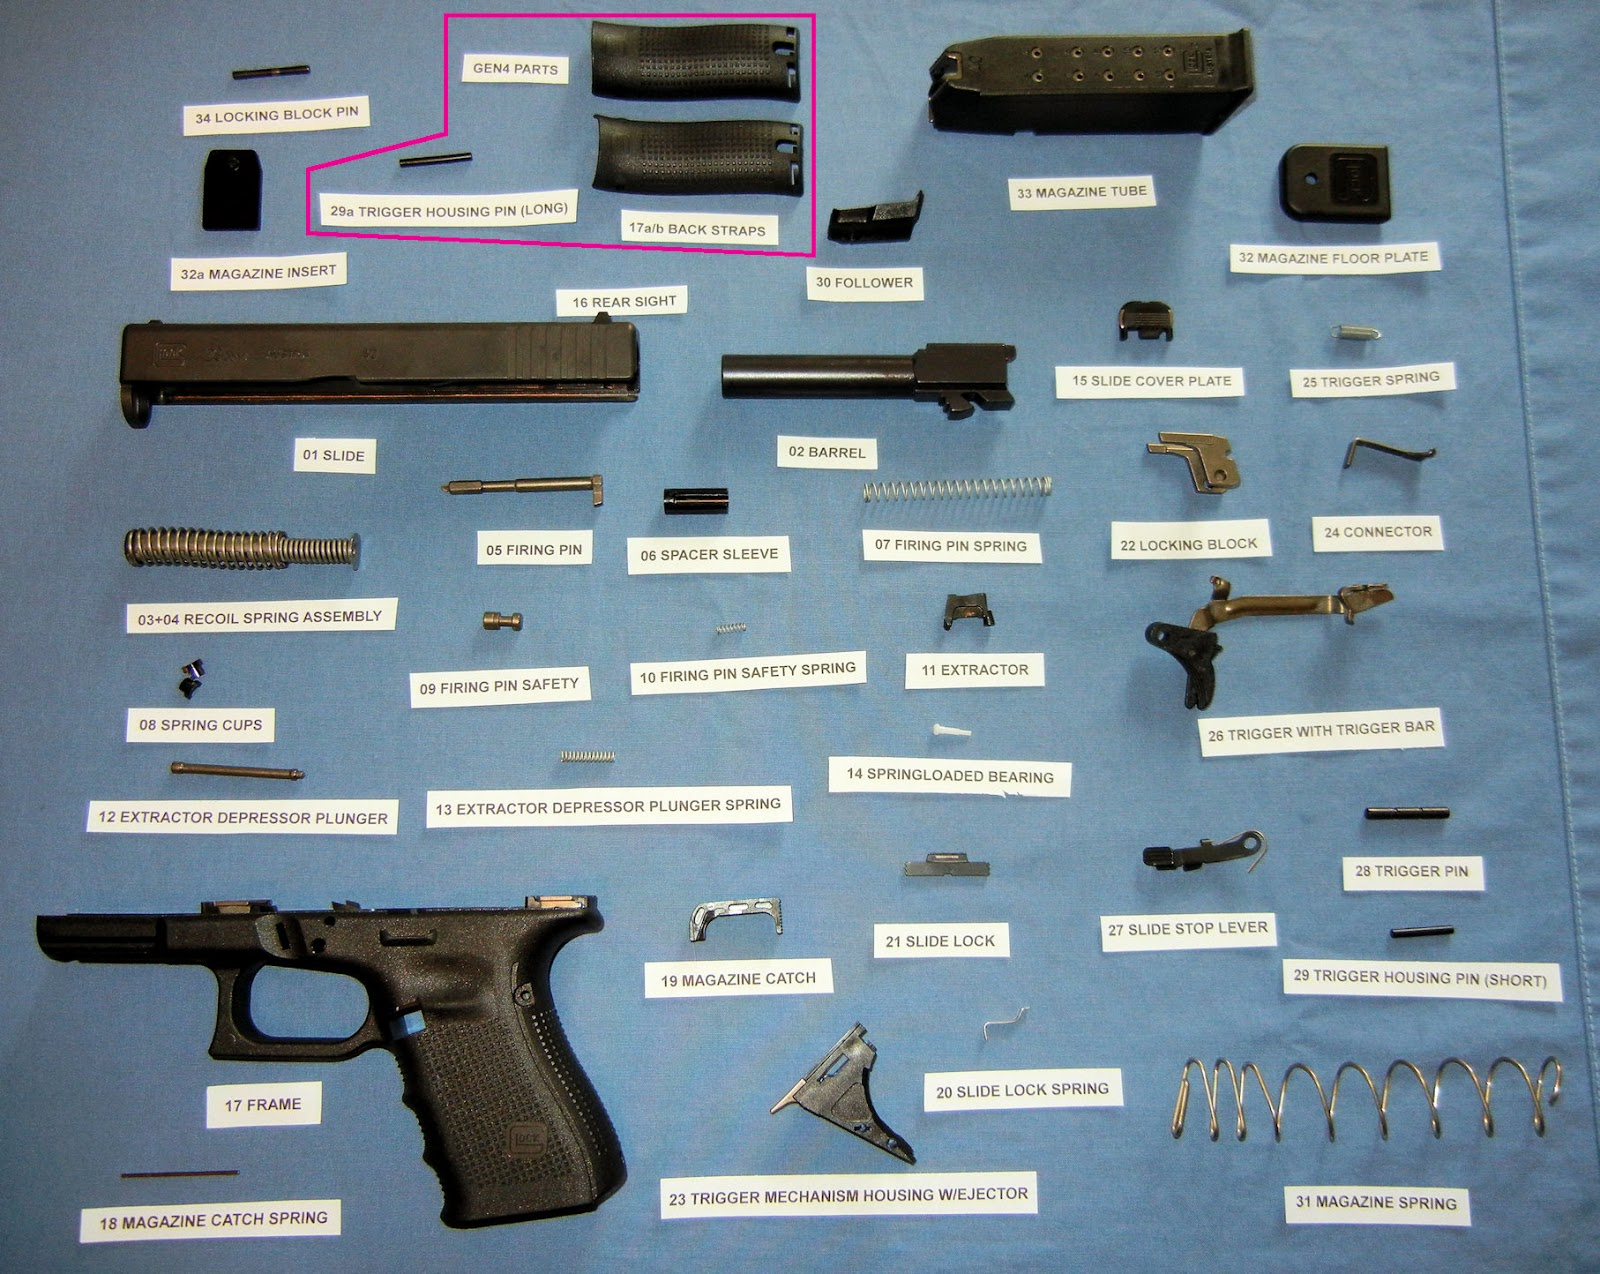 ammo and gun collector glock internal parts diagrams rh ammoandguncollector com glock 22 parts diagram glock 22 parts diagram